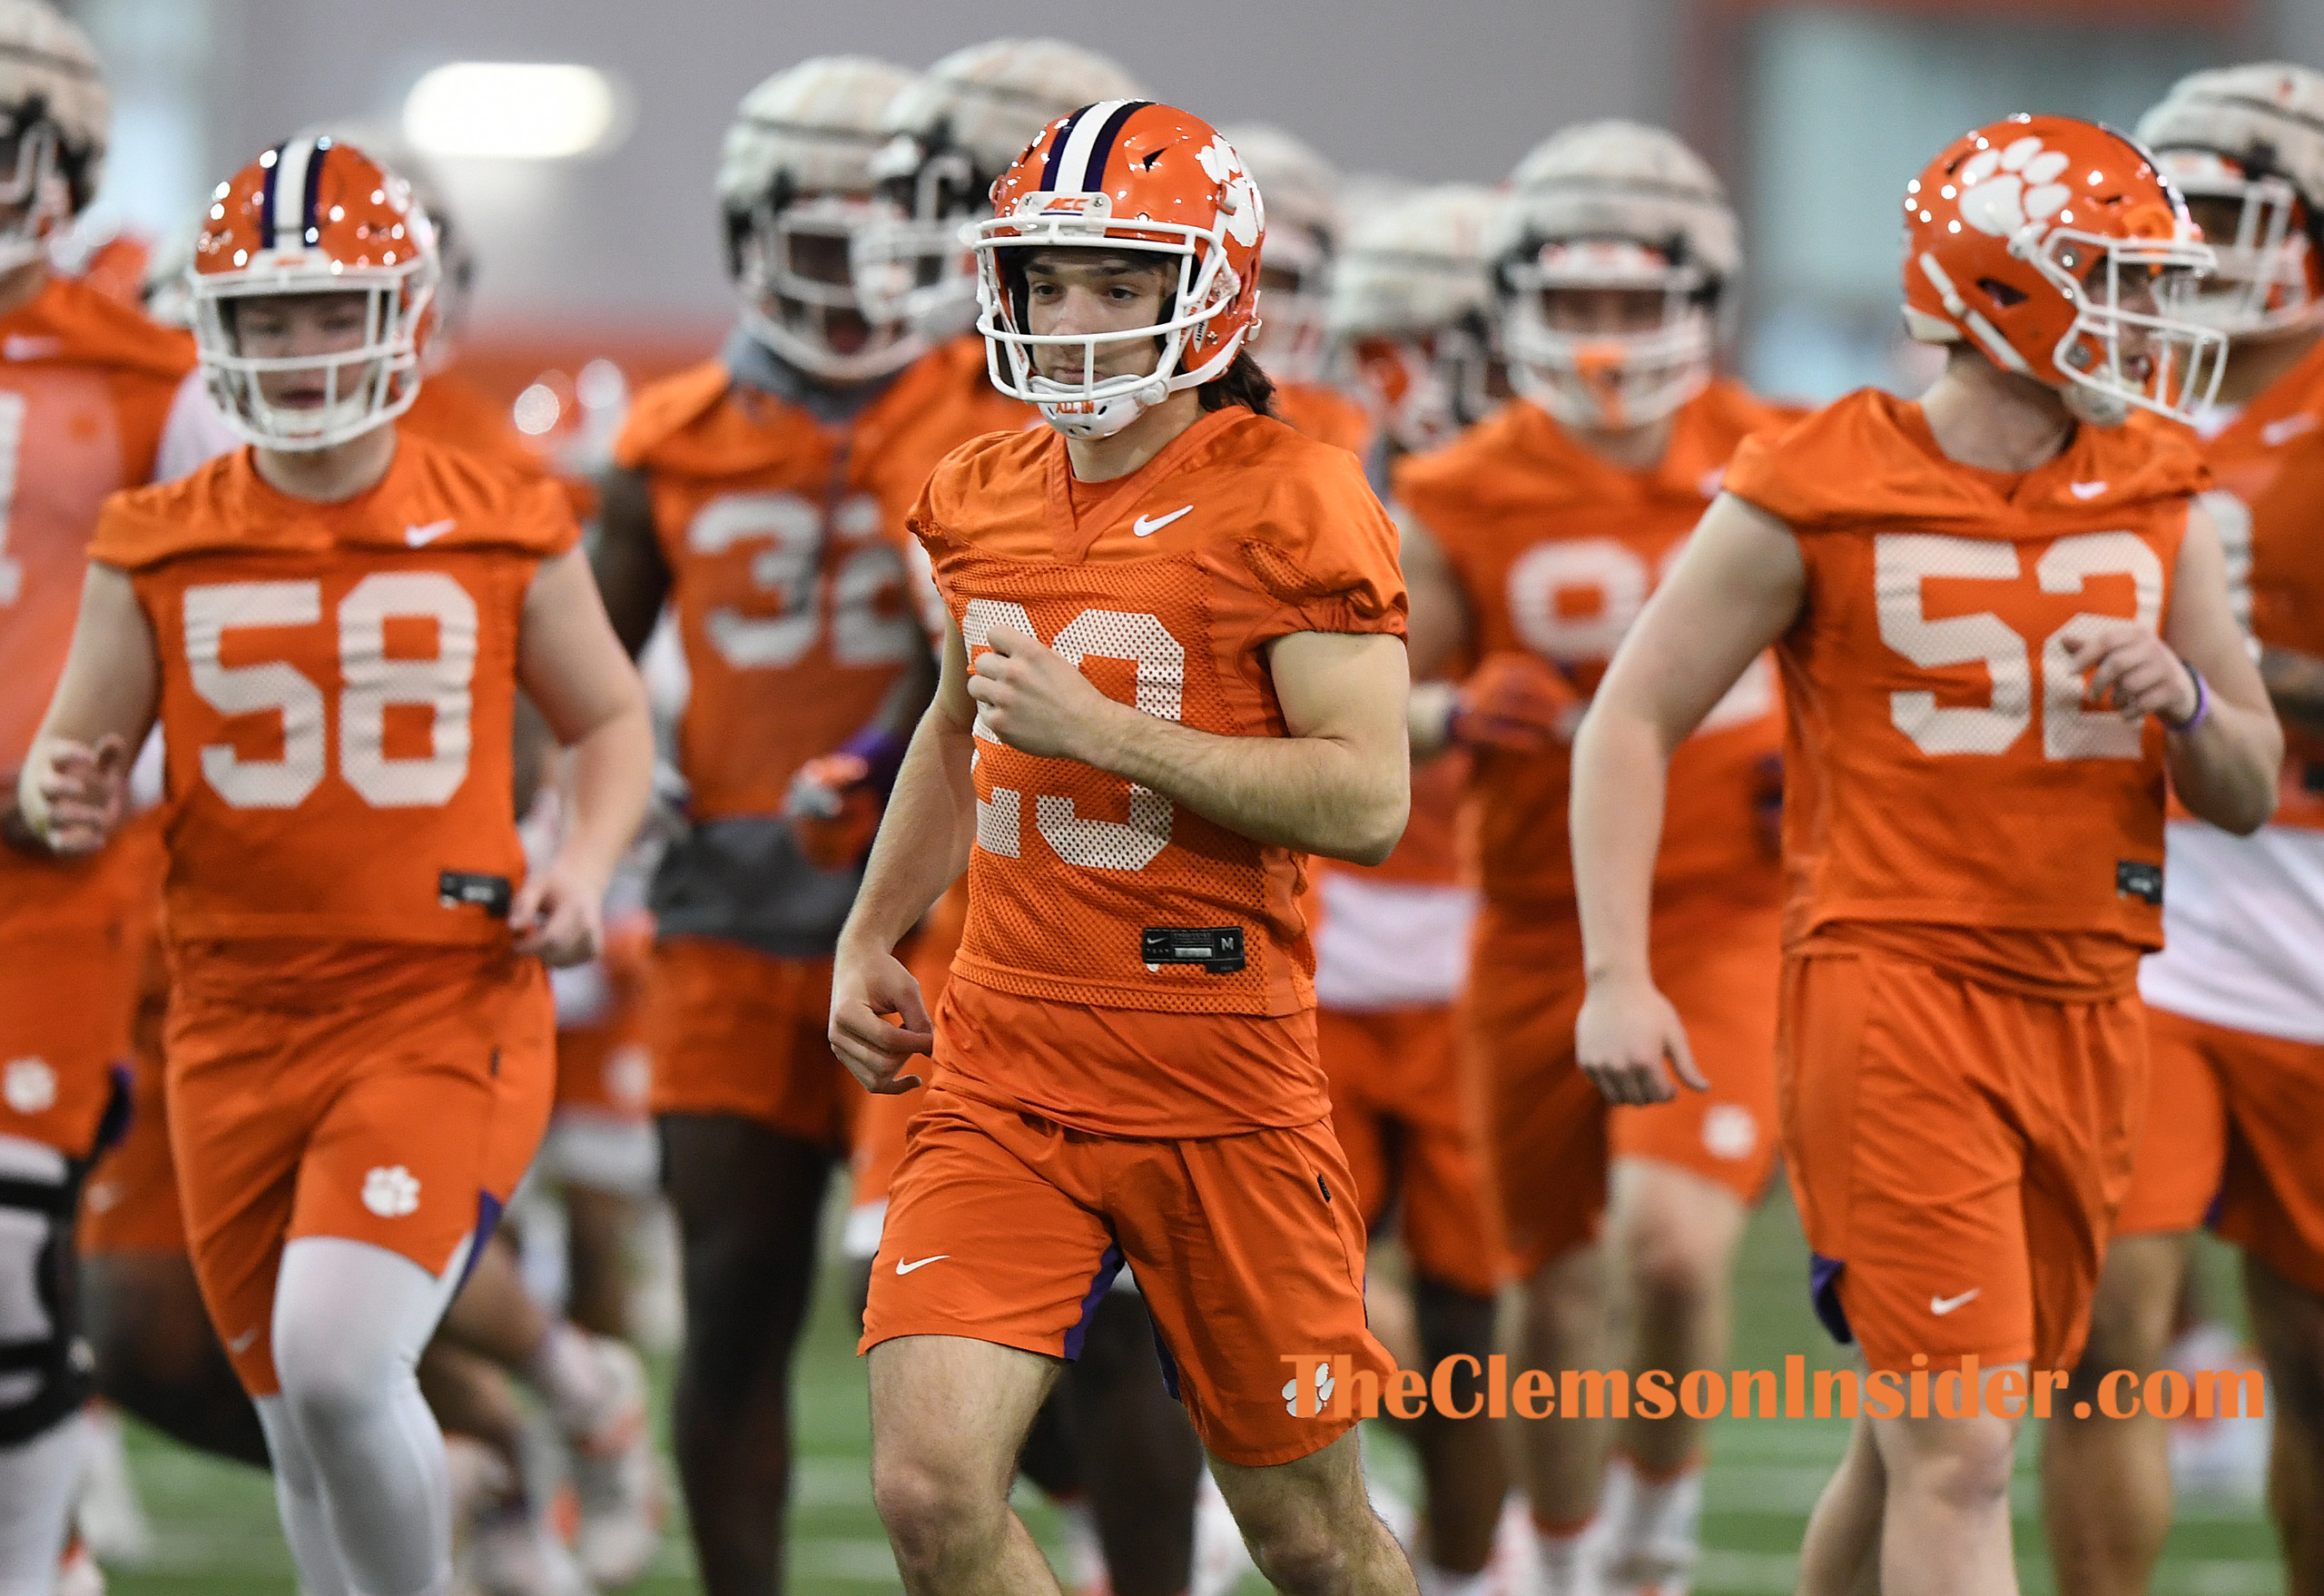 Clemson place kicker B.T. Potter (29) during the Tiger's spring practice Wednesday, February 26, 2020. Bart Boatwright/The Clemson Insider